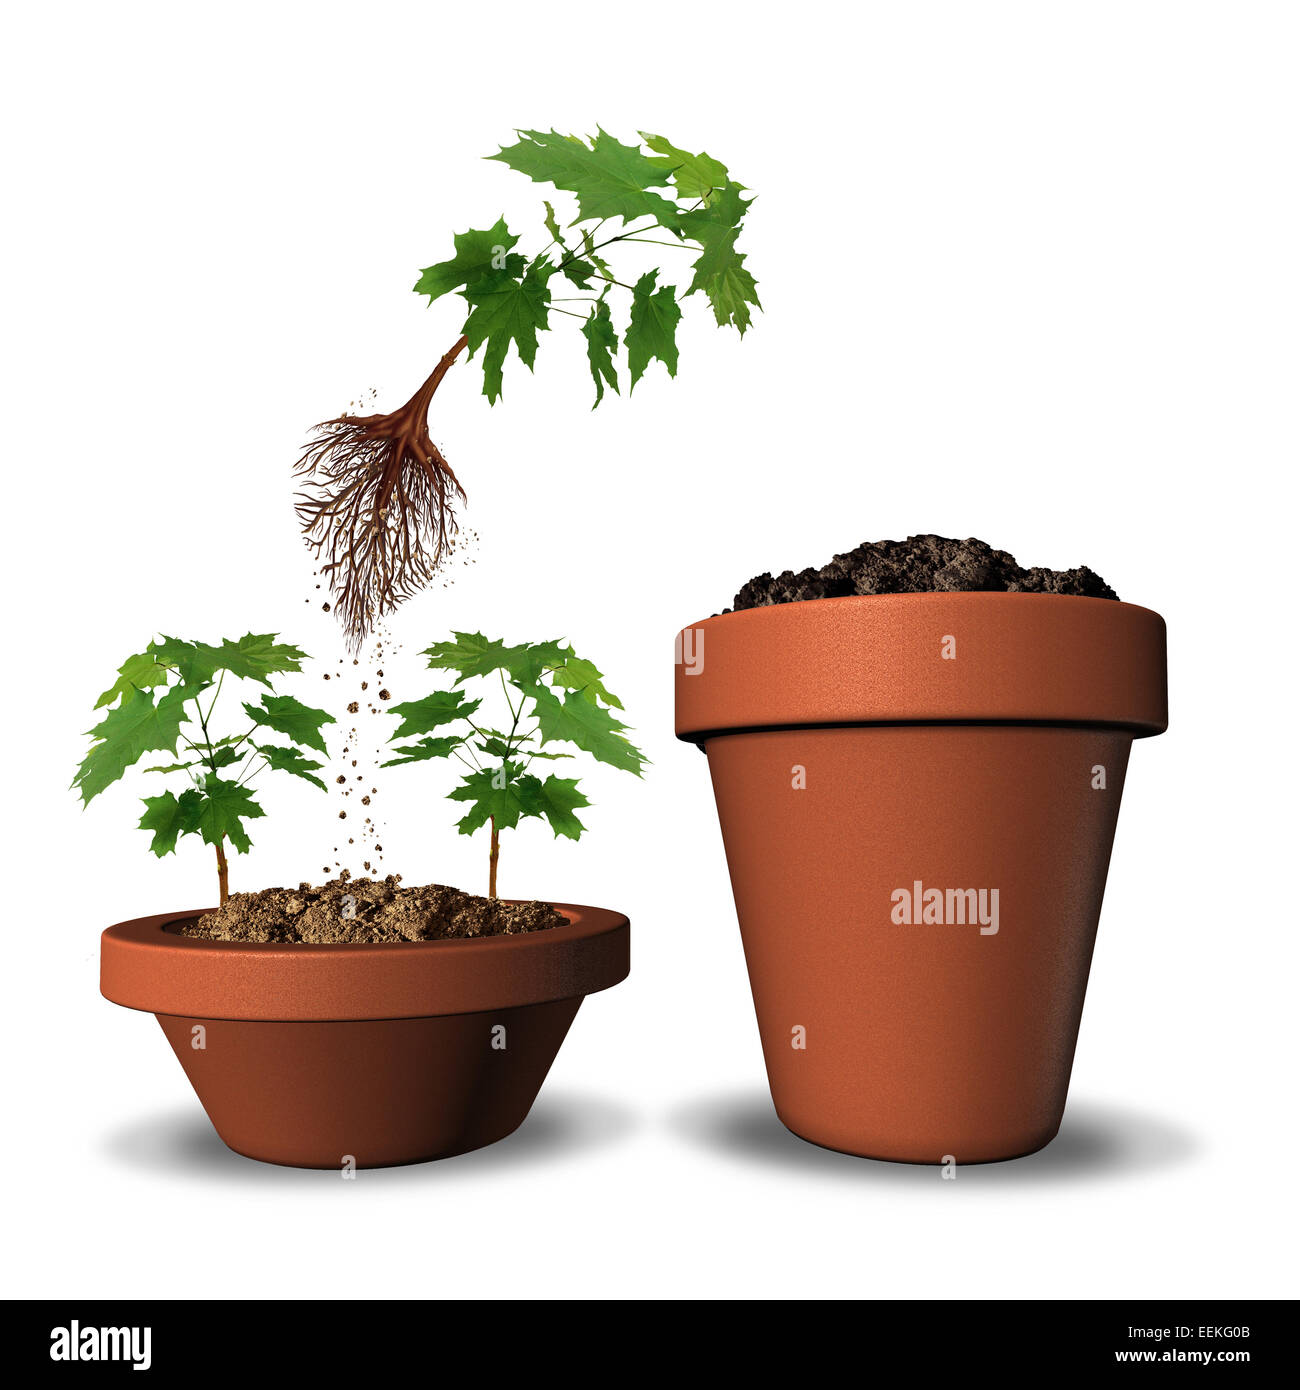 ambition concept and career promotion from an overcrowded market ambition concept and career promotion from an overcrowded market as a flying sapling tree jumping out